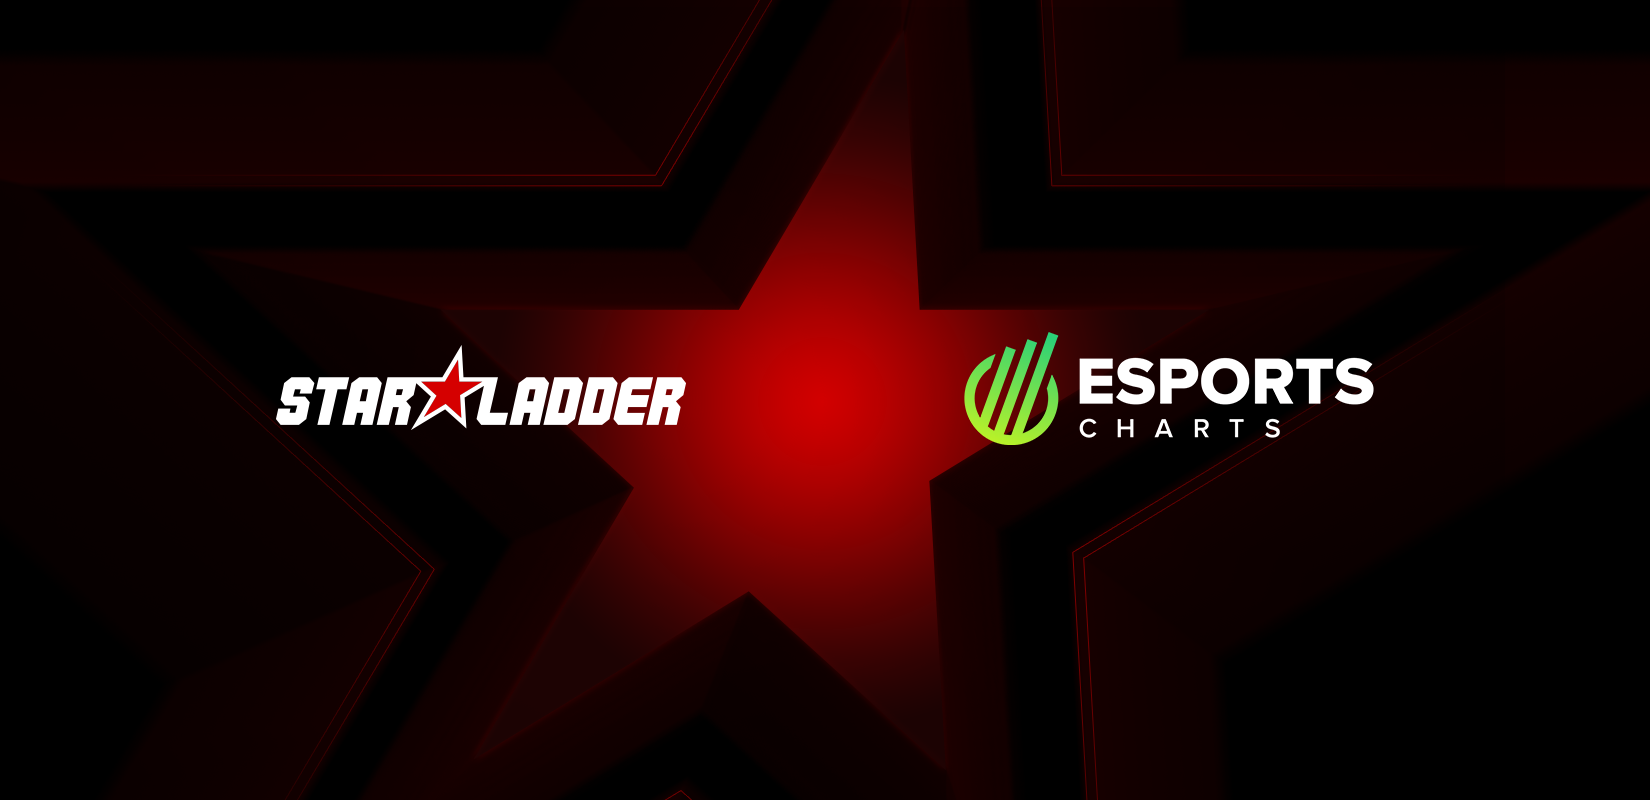 StarLadder and Esports Charts announce the signing of a partnership agreement